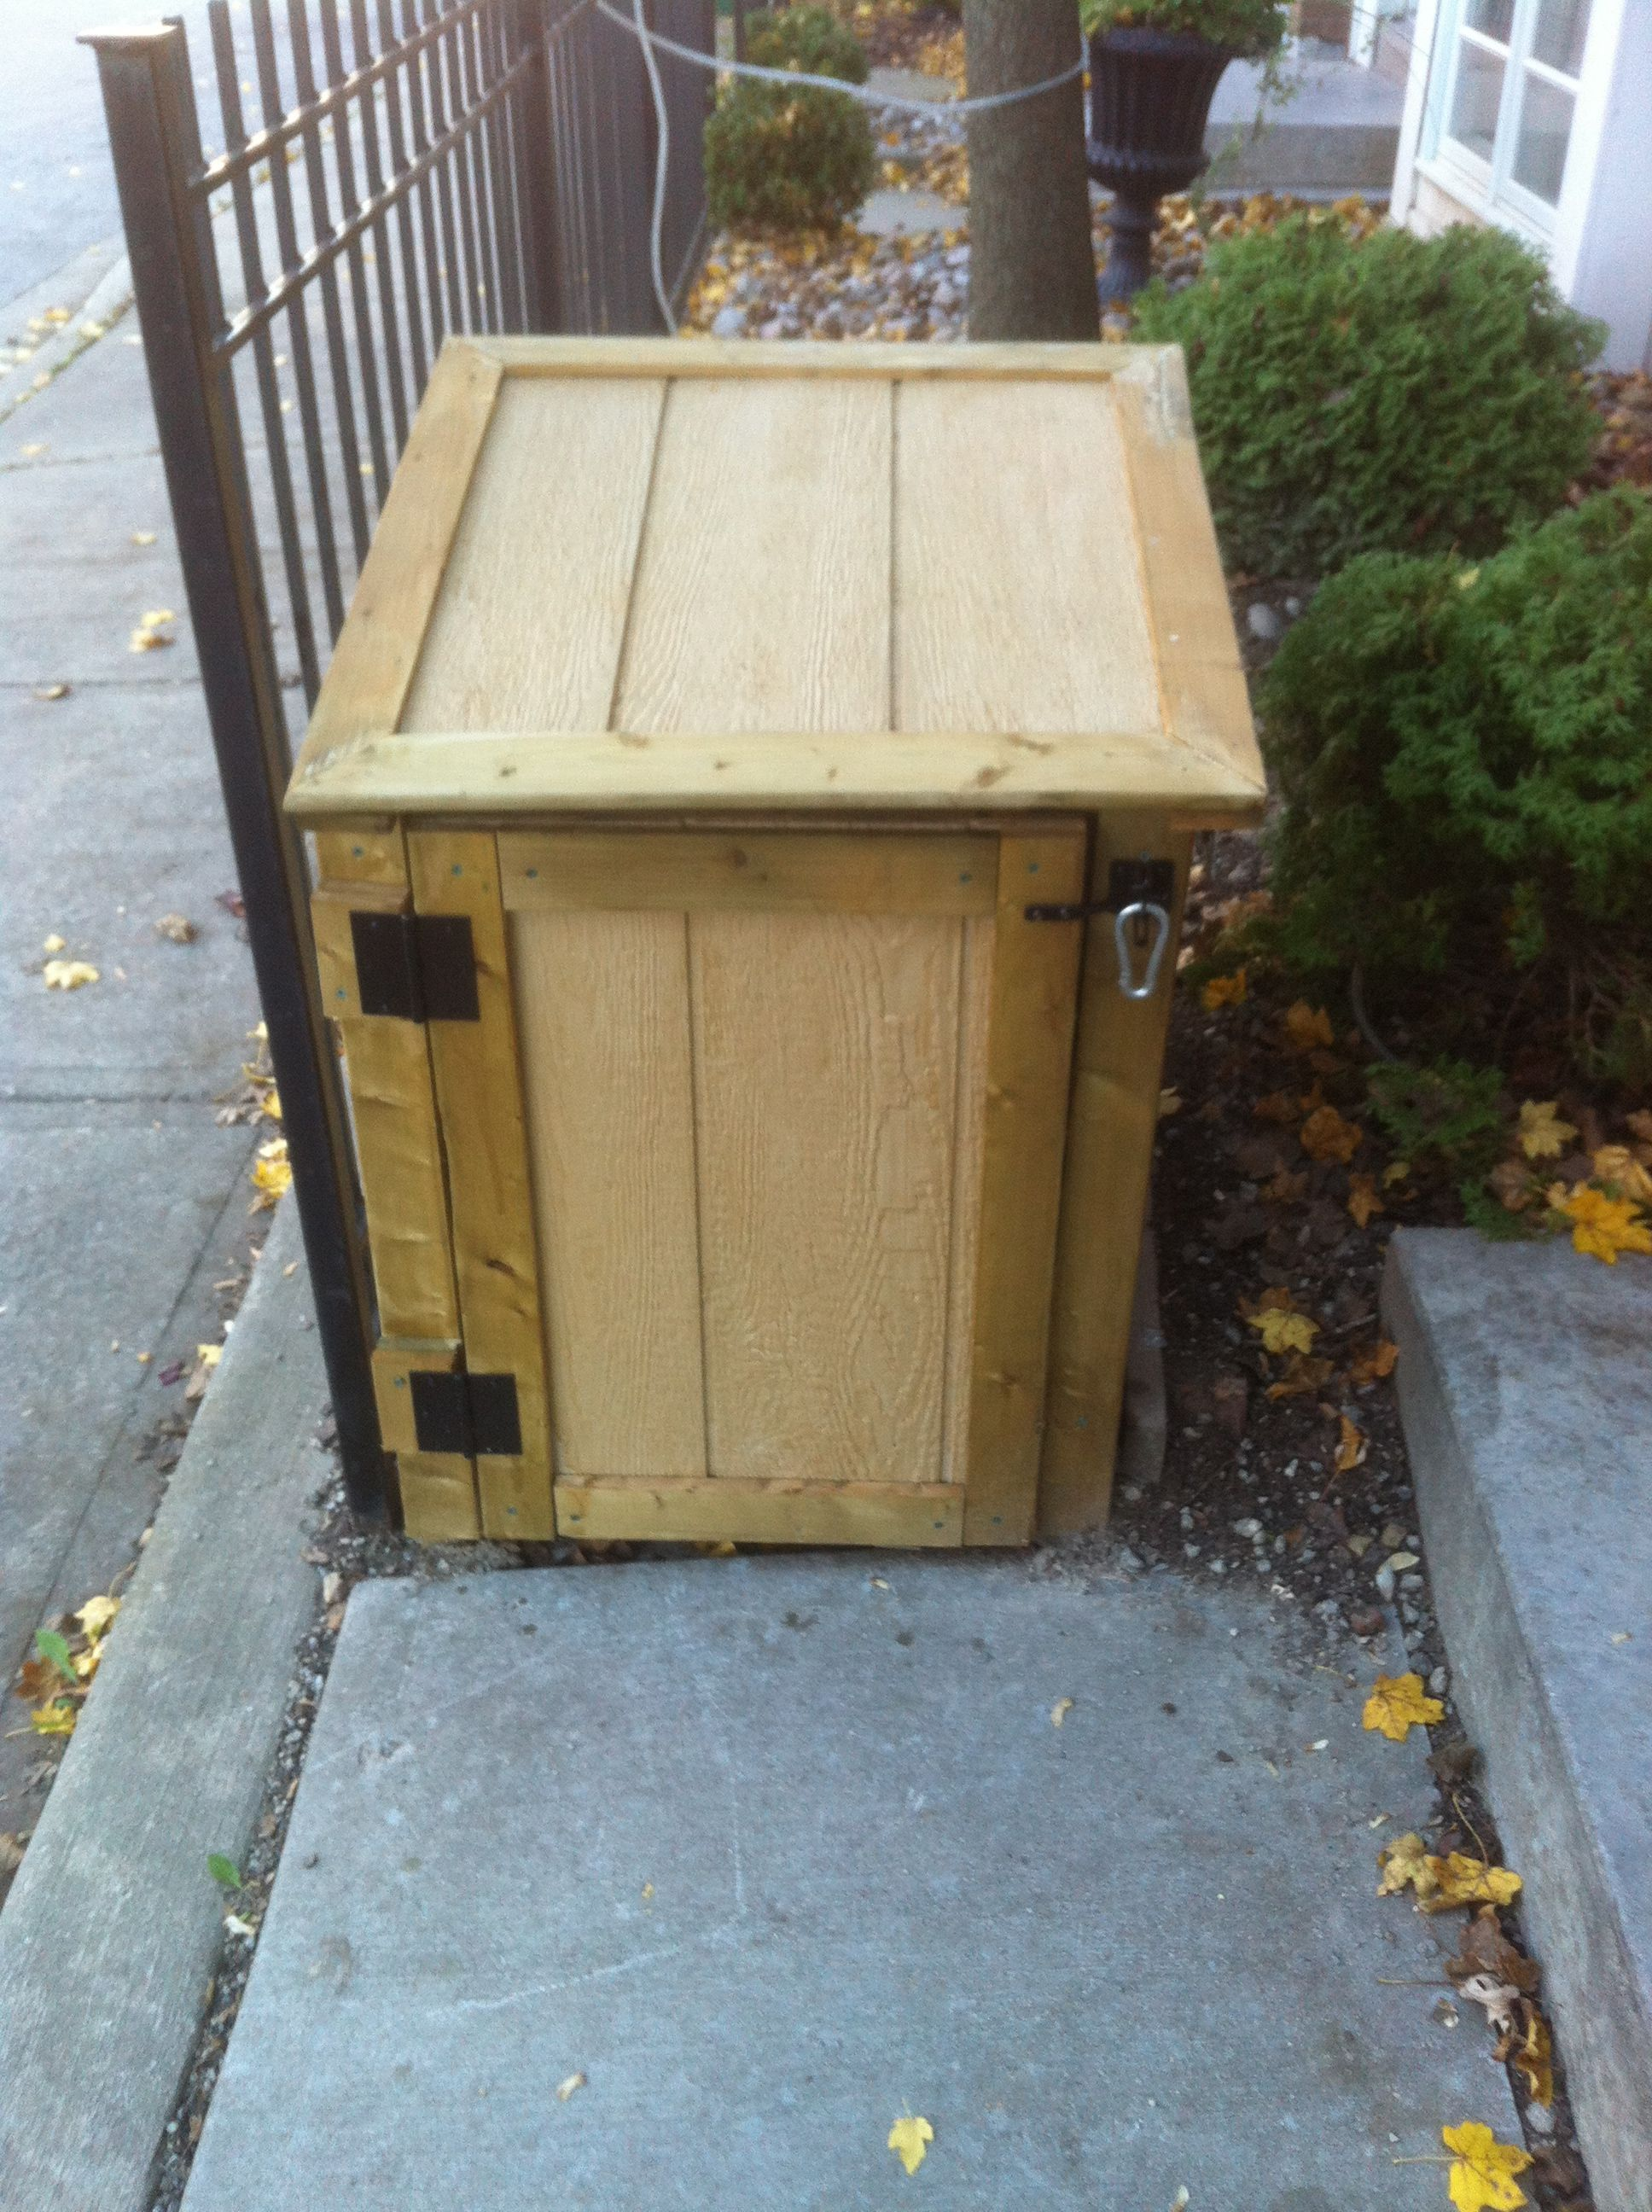 Raccoon Proof Green Bin Storage Green Bin Carpentry Projects